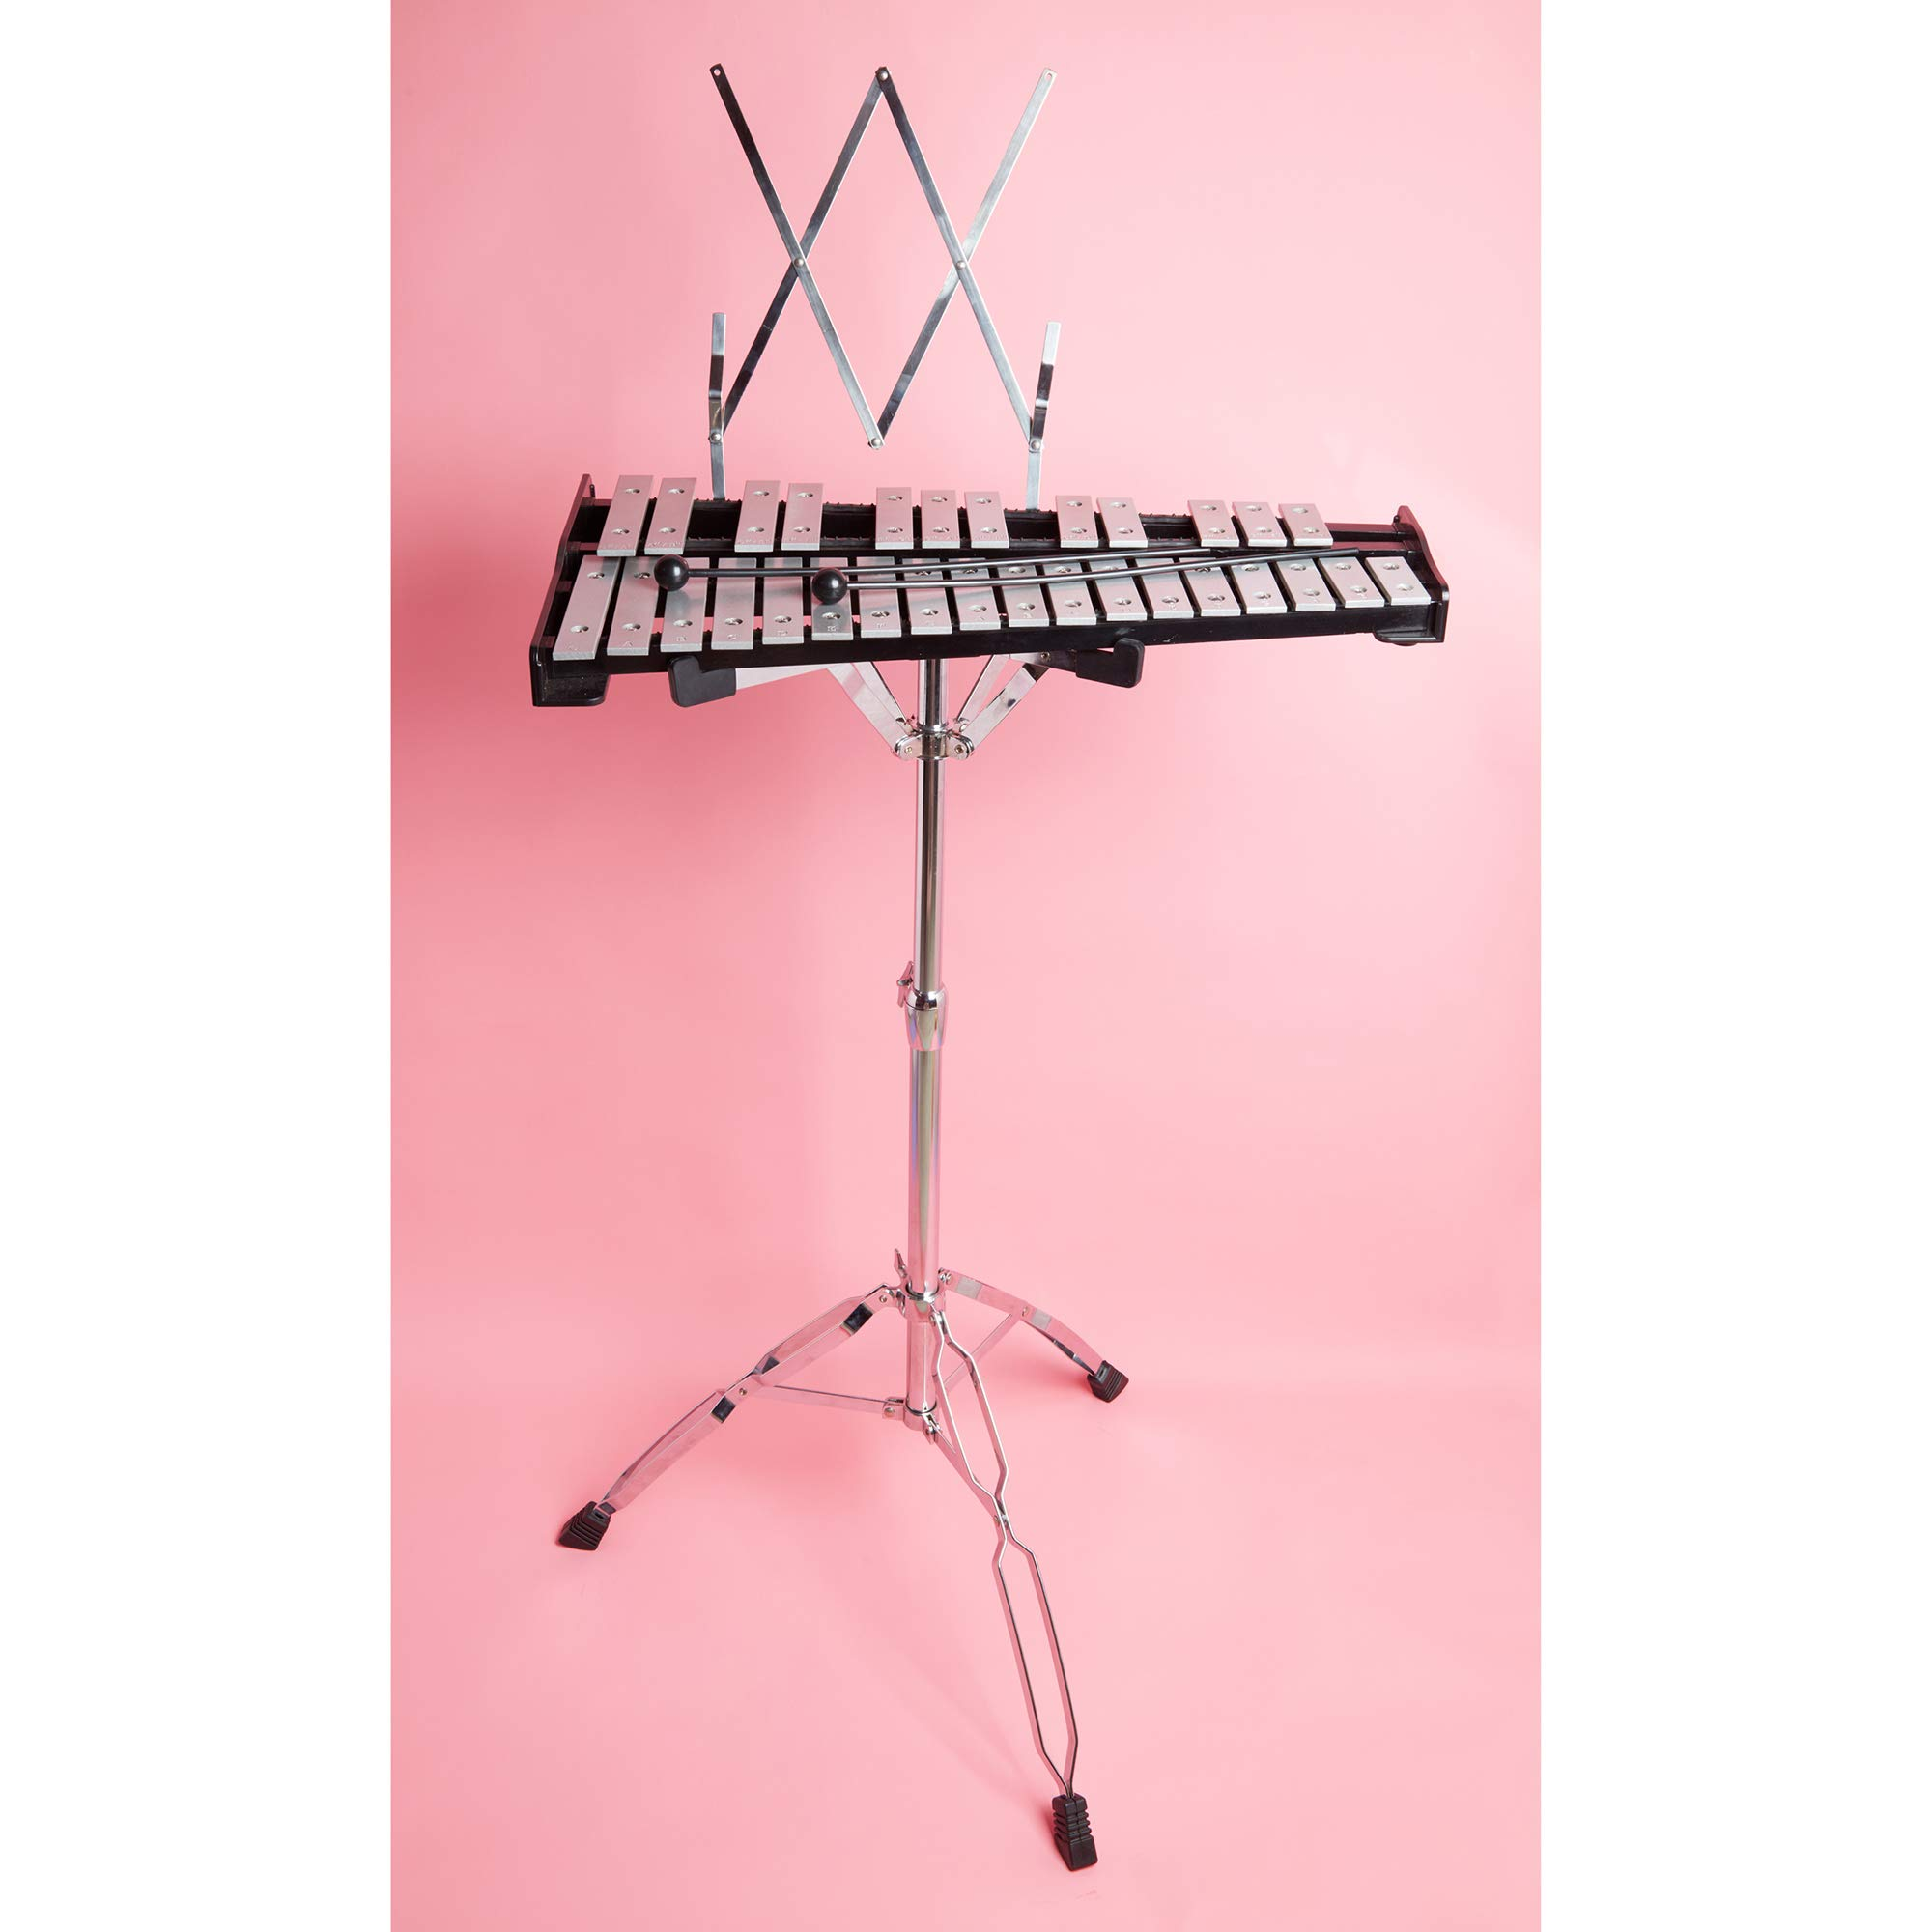 30 note Professional Glockenspiel - Metal Bell Kit Xylophone with Stand, Note Holder and Carrying Bag by inTemenos (Image #6)